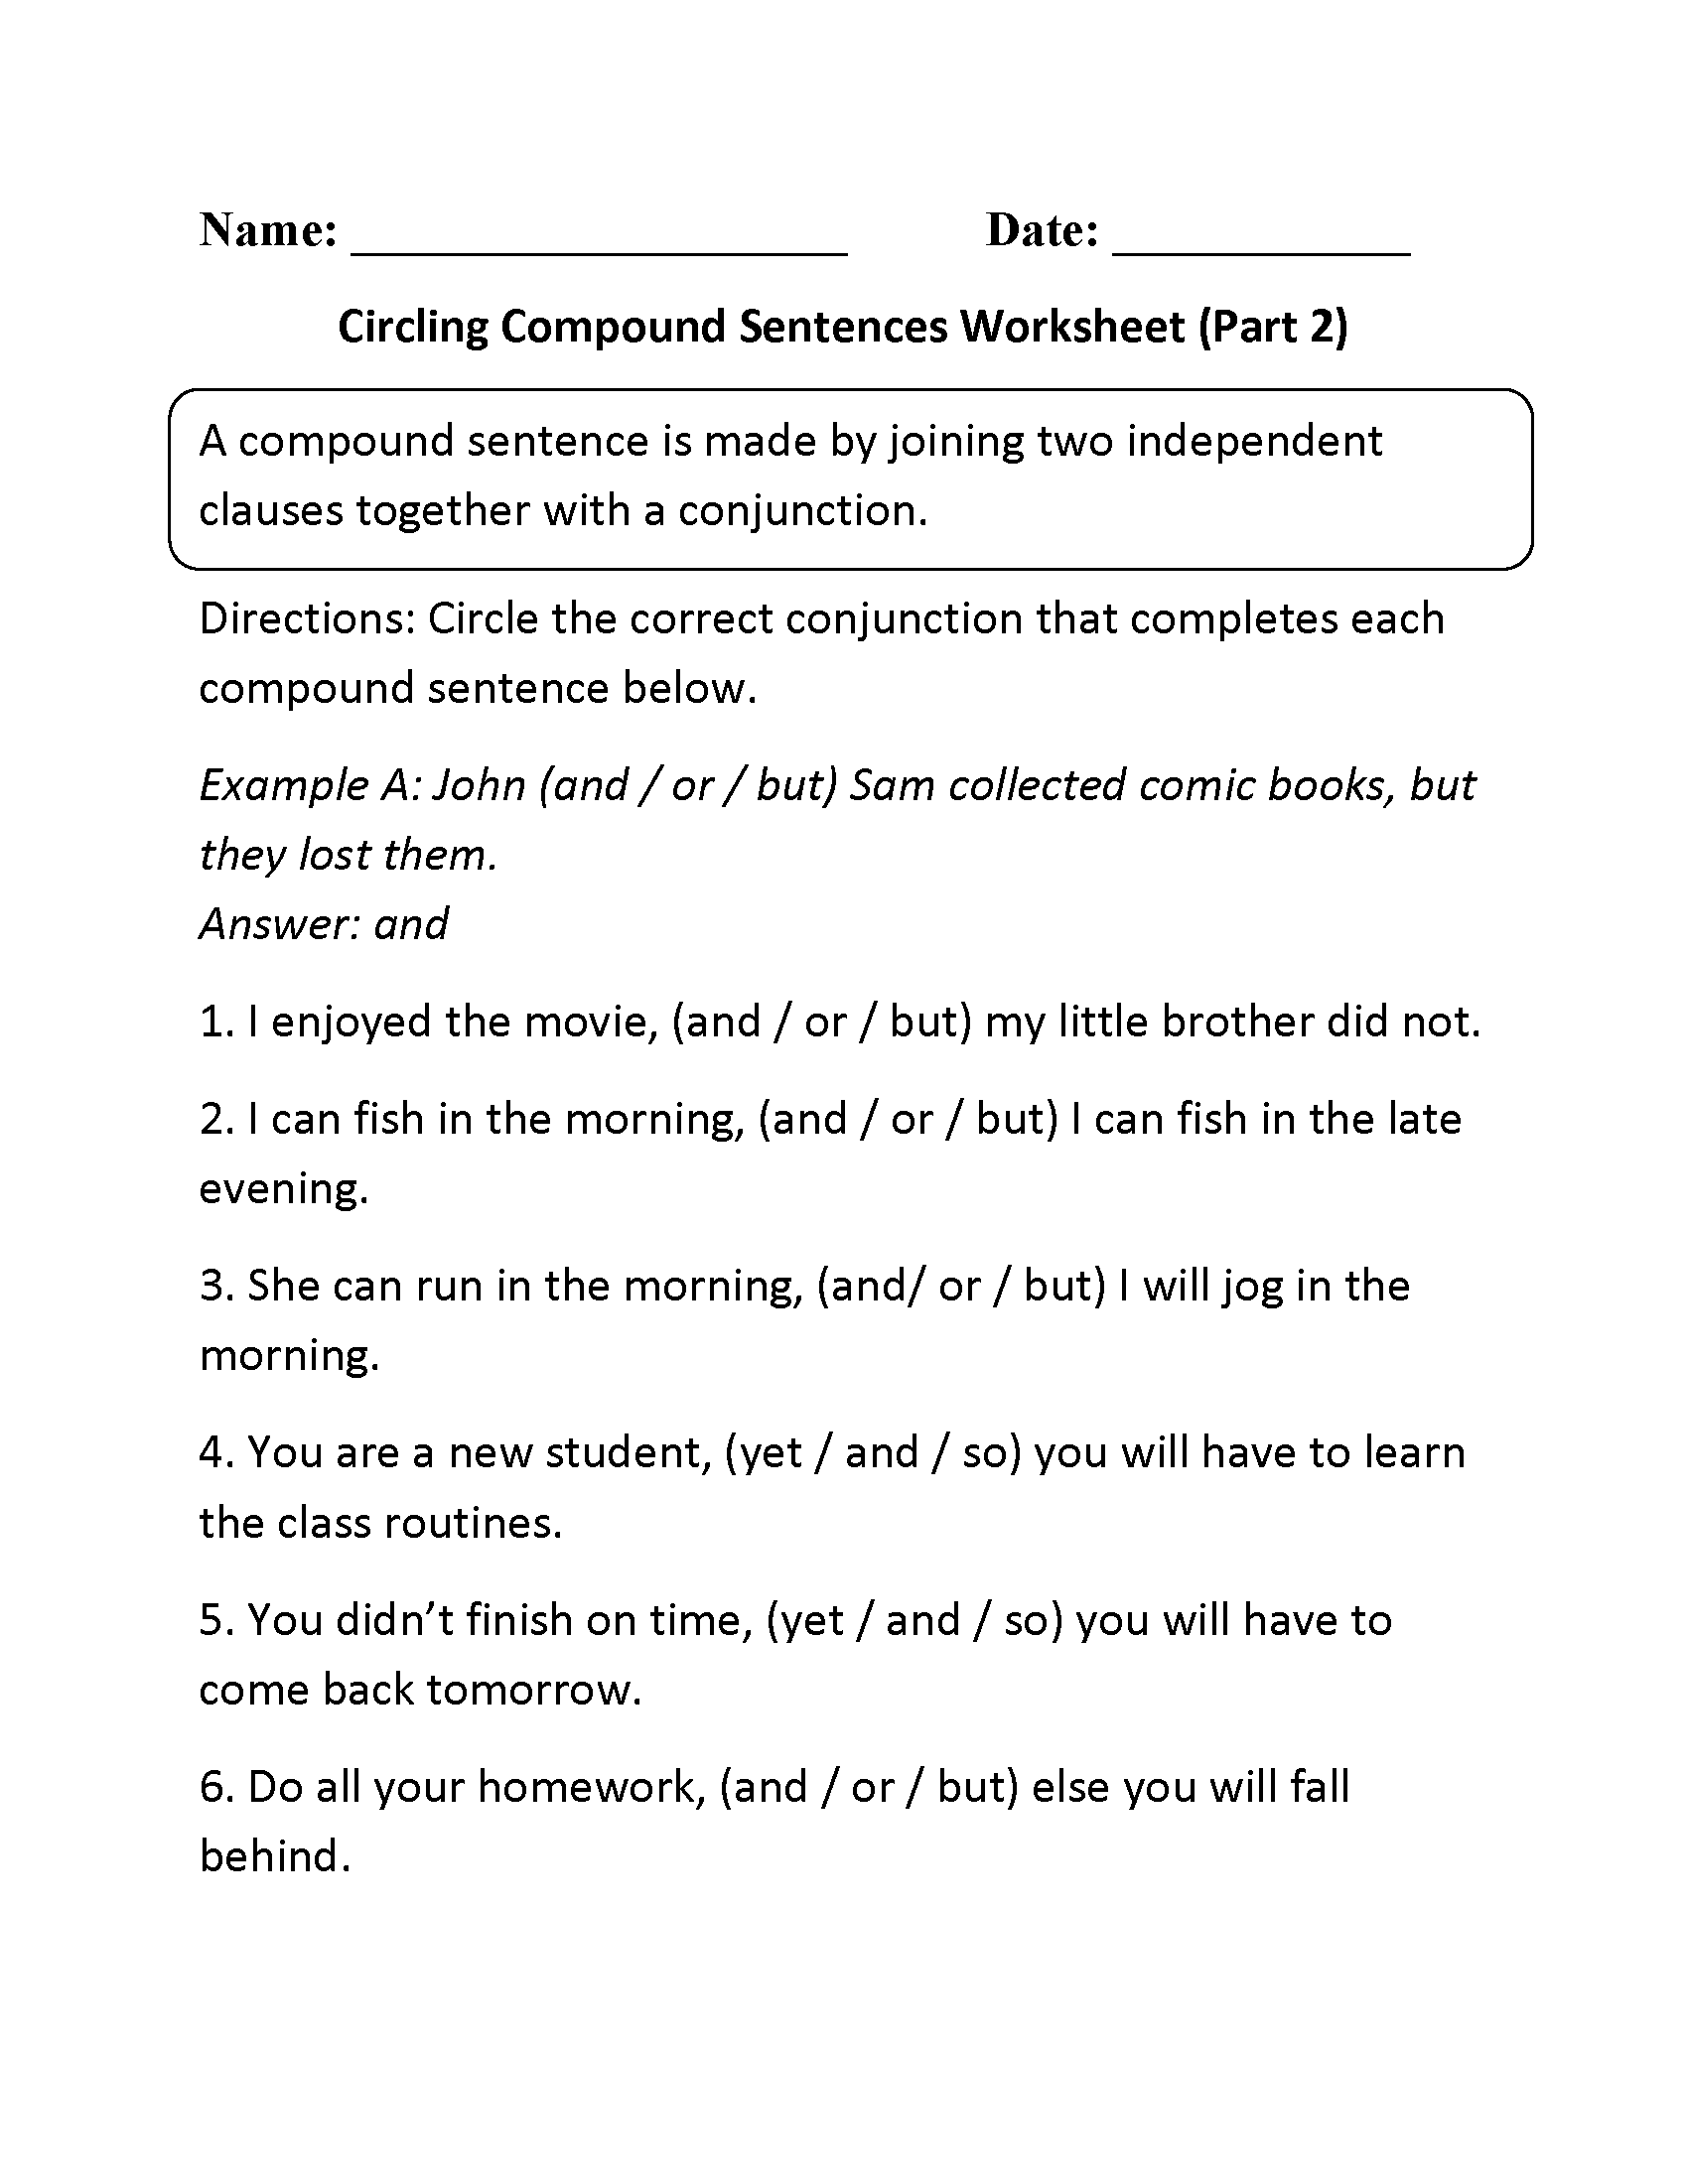 worksheet Fragments And Run-ons Worksheets sentences worksheets compound worksheet part 2